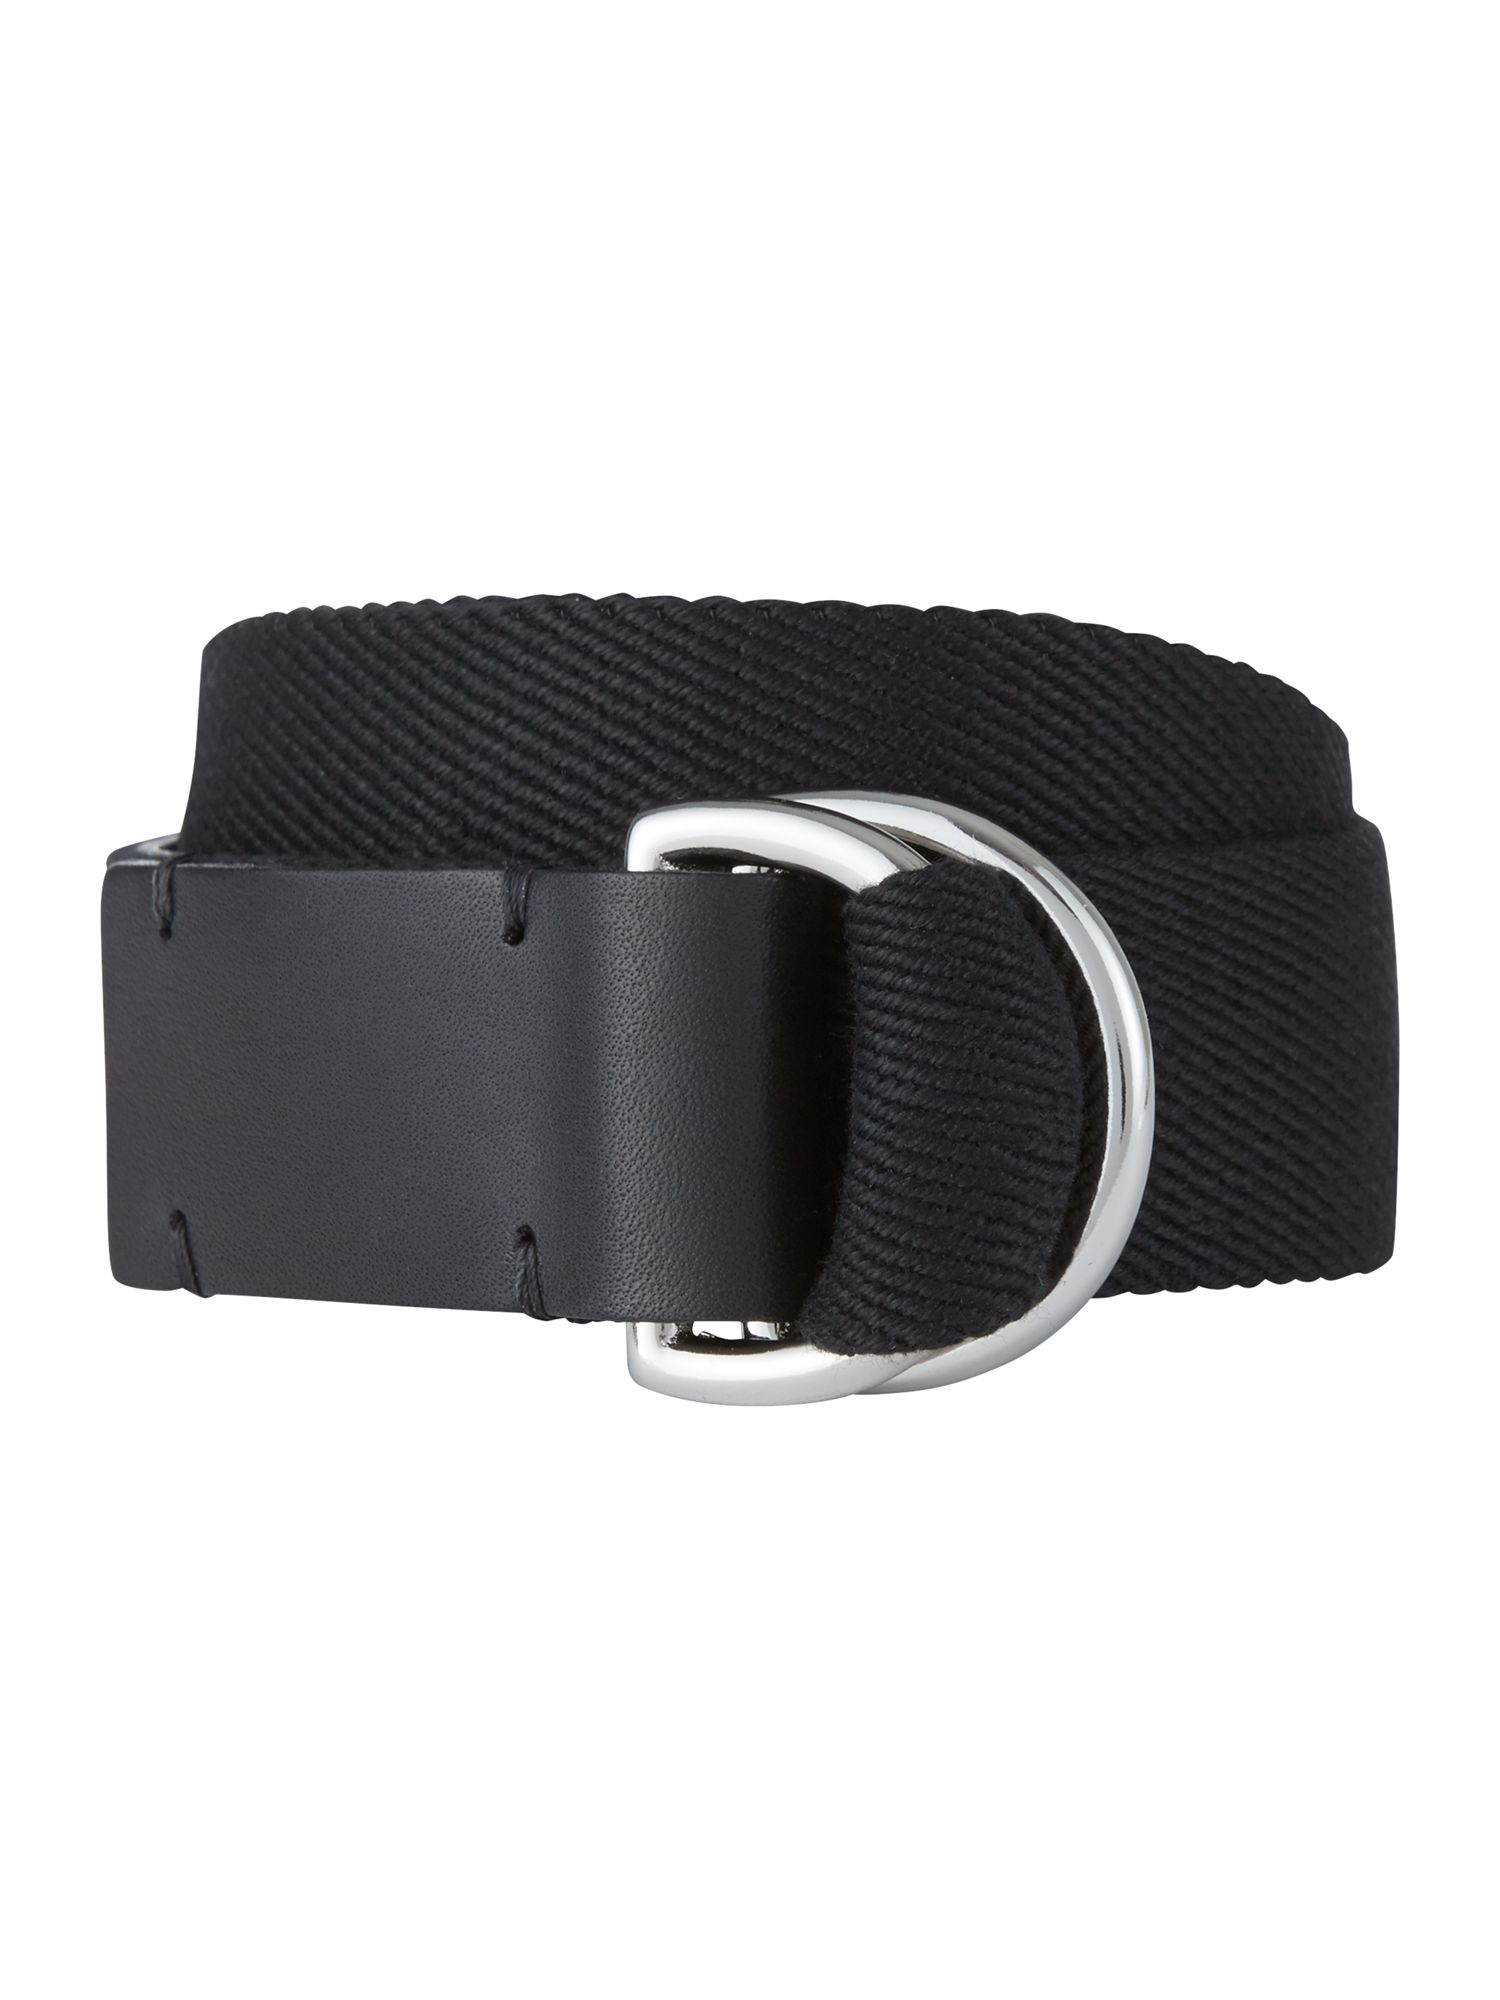 Cotton webbing belt